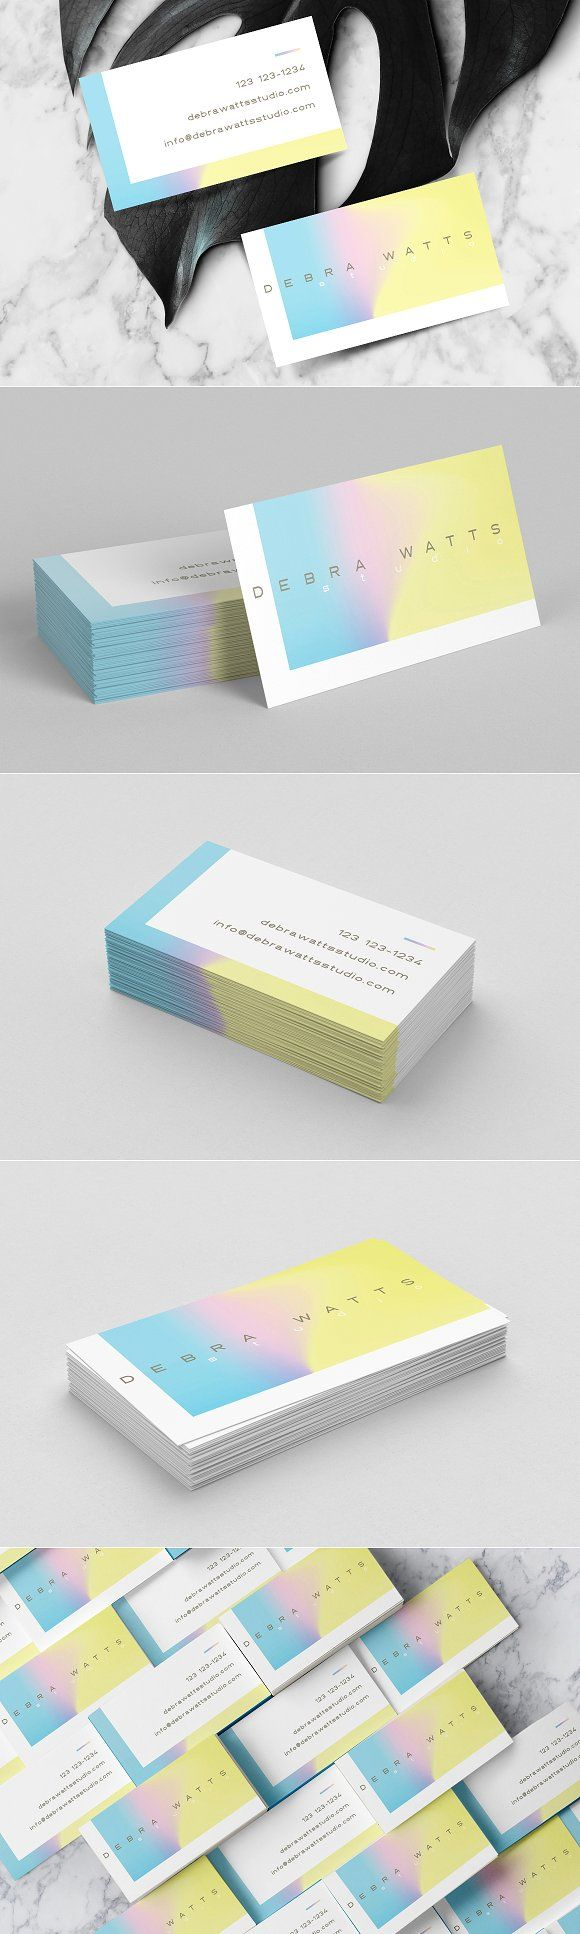 Feminine holographic business card by Polar Vectors on @creativemarket